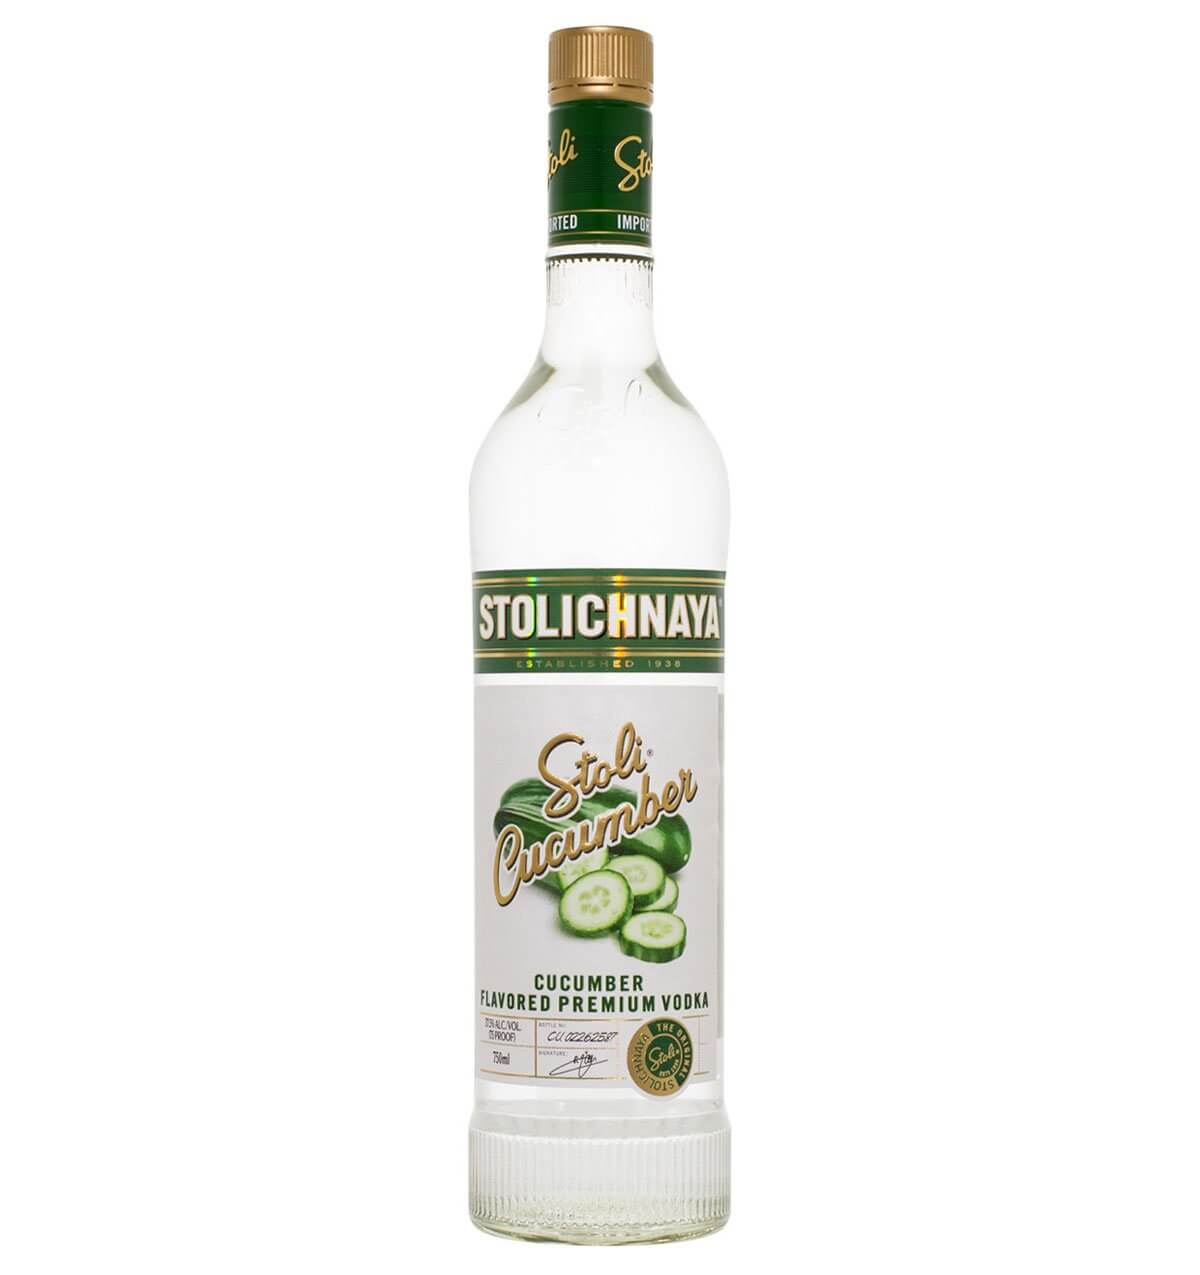 Stolichnaya Cucumber Vodka, bottle on white